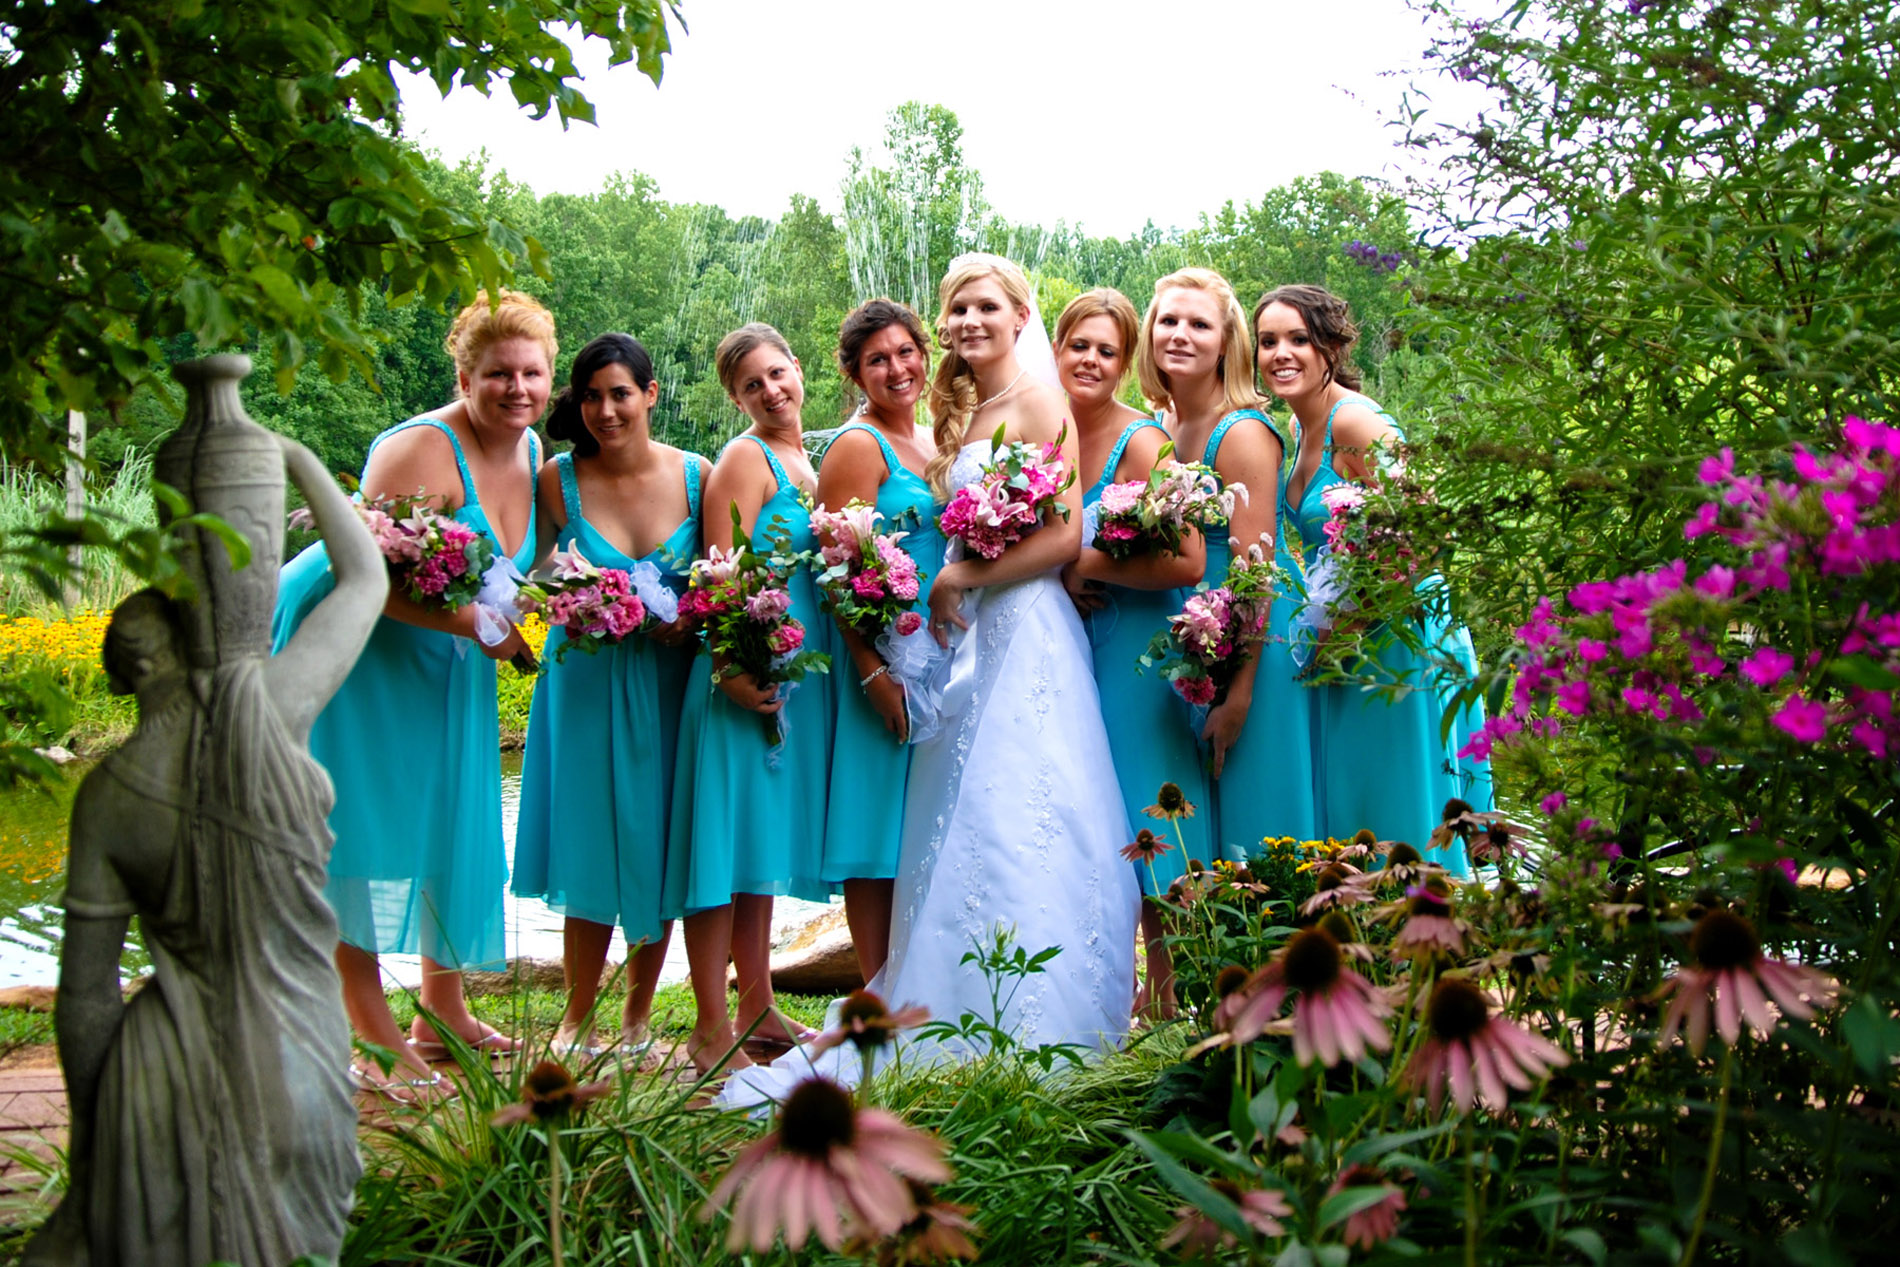 bride with bridesmaids super qay 32450